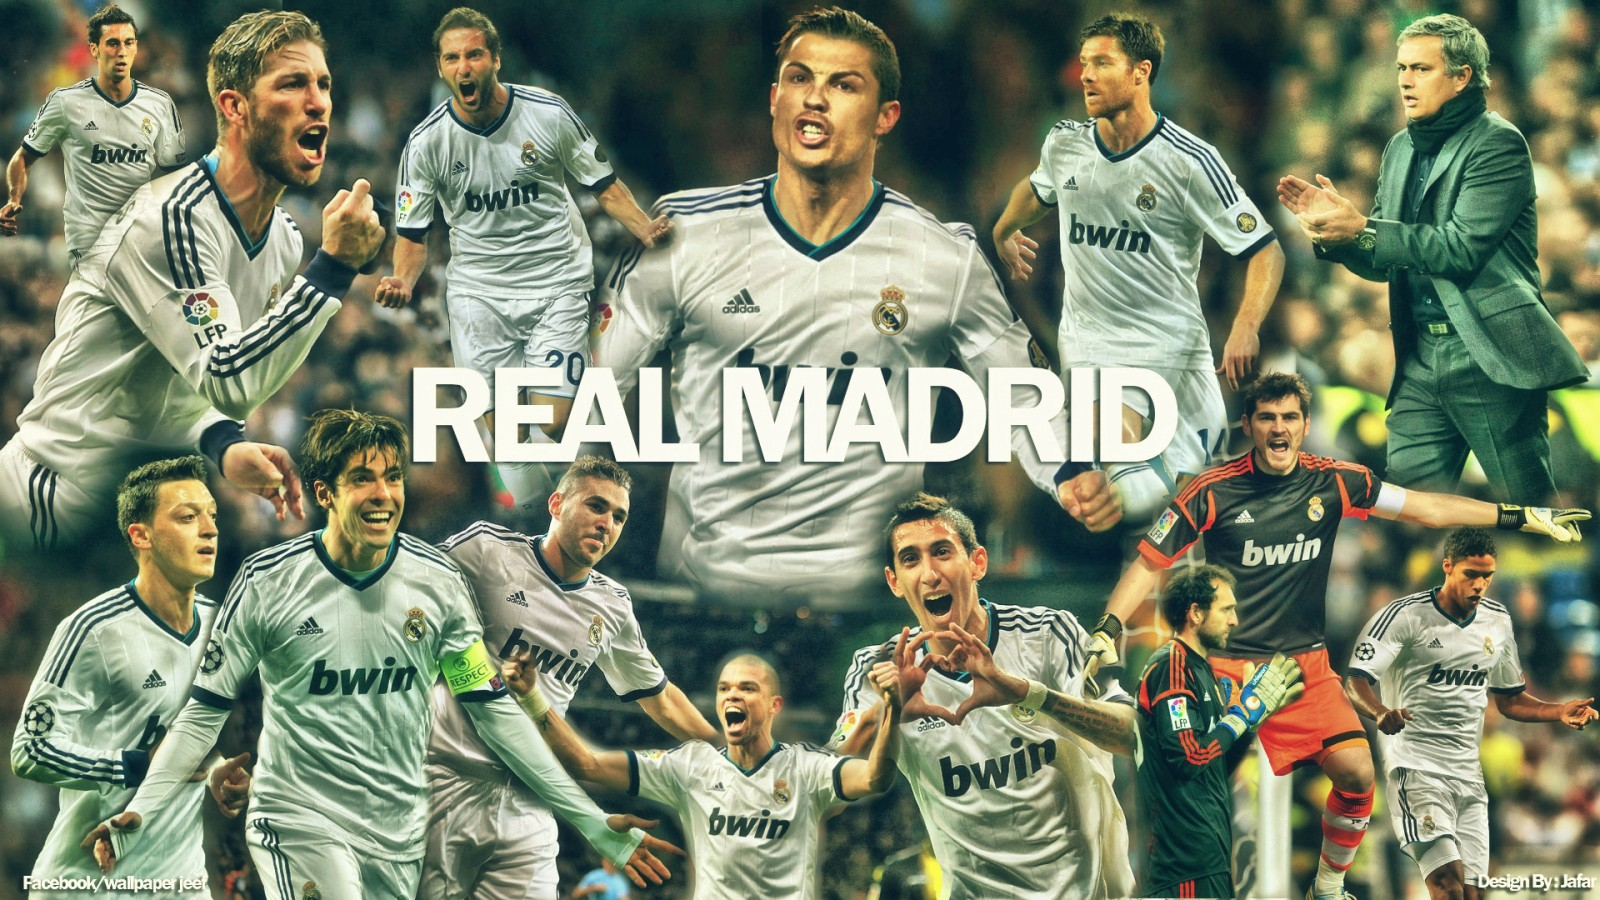 Real-Madrid-FC-2013-wallpaper-hd